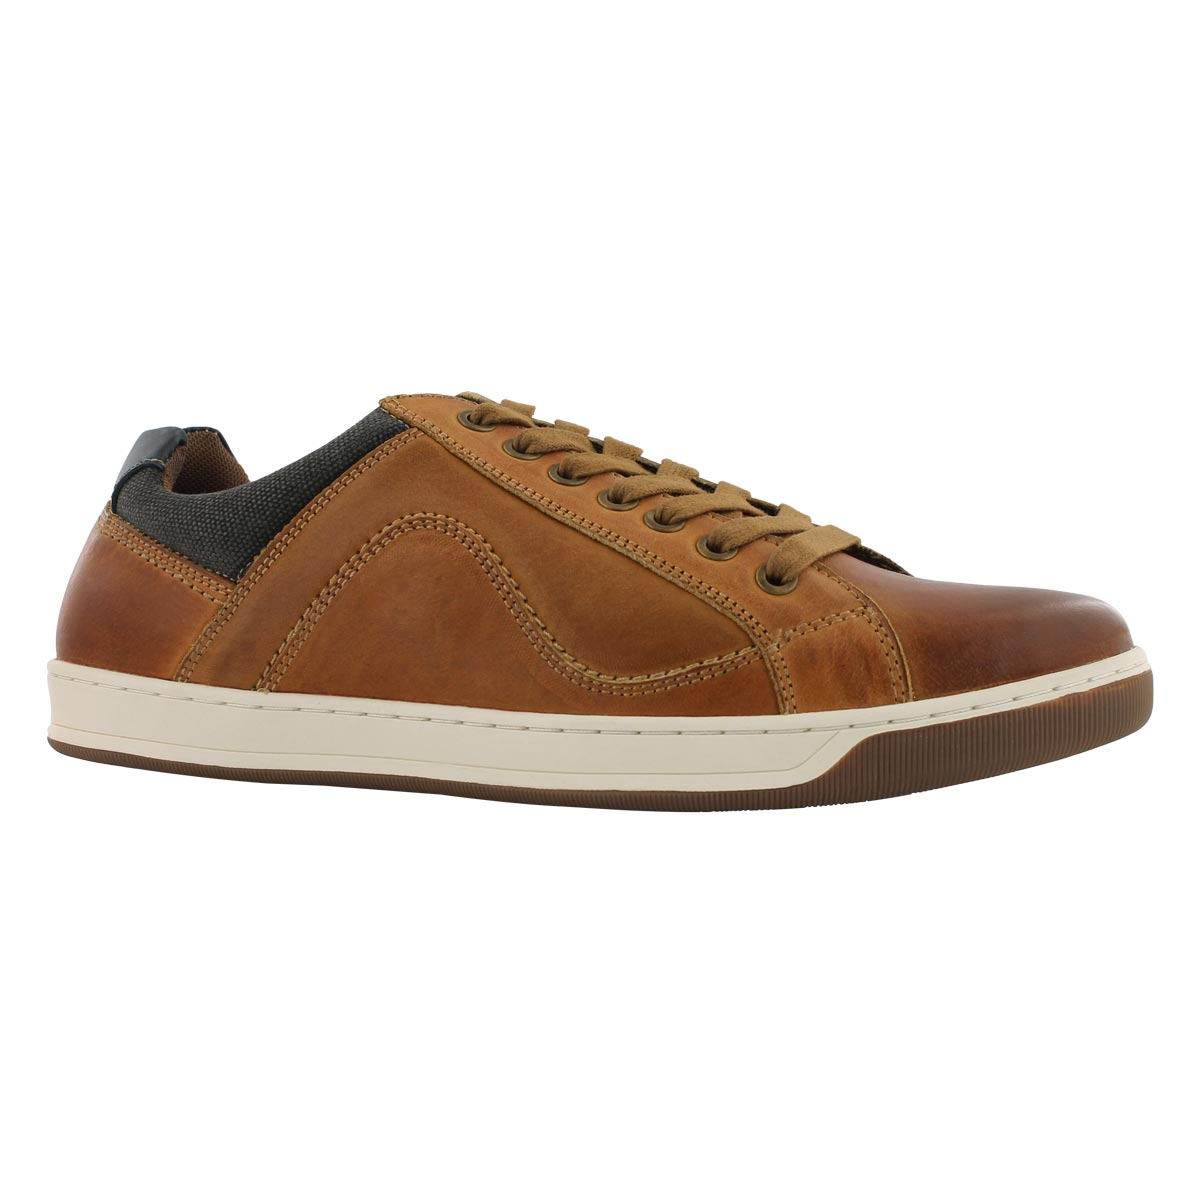 Mns Chandler rust laceup casual sneakr